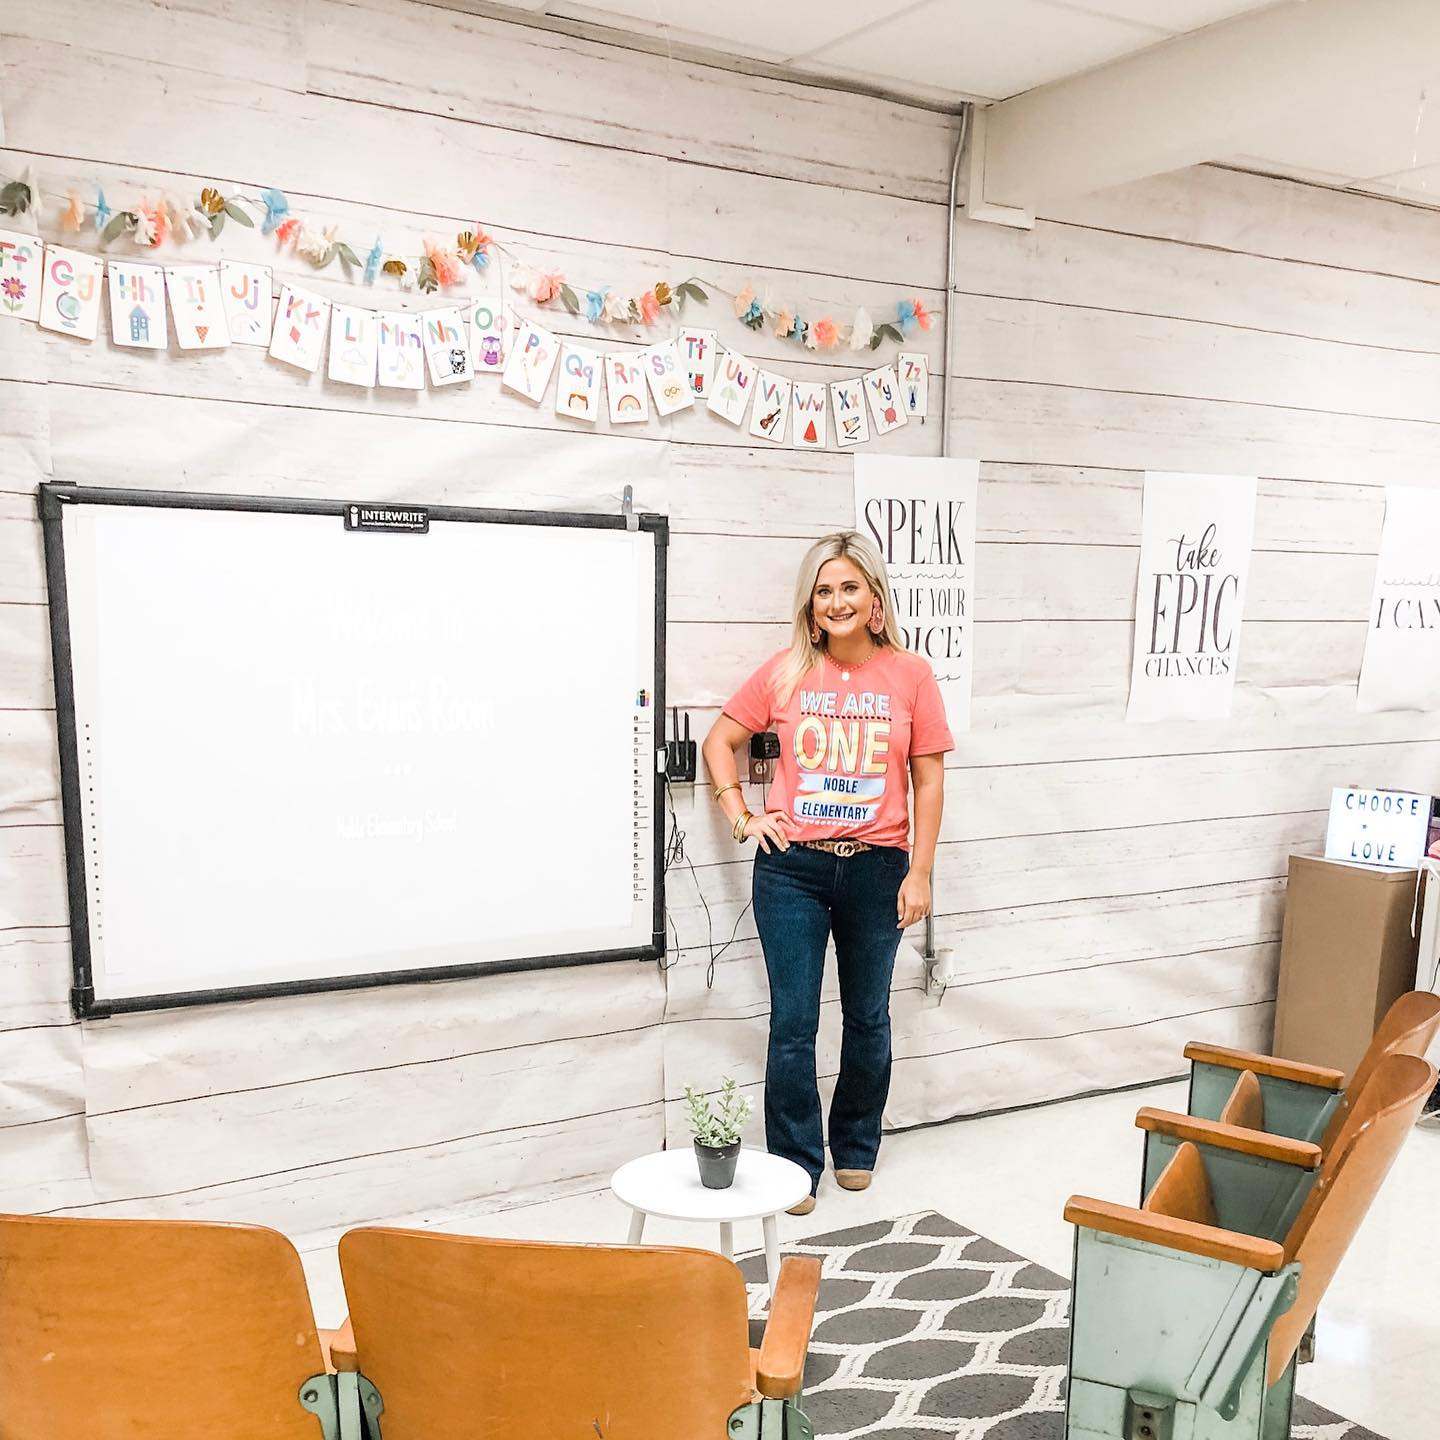 Southeast Arkansas teacher's post about classroom decorations goes viral